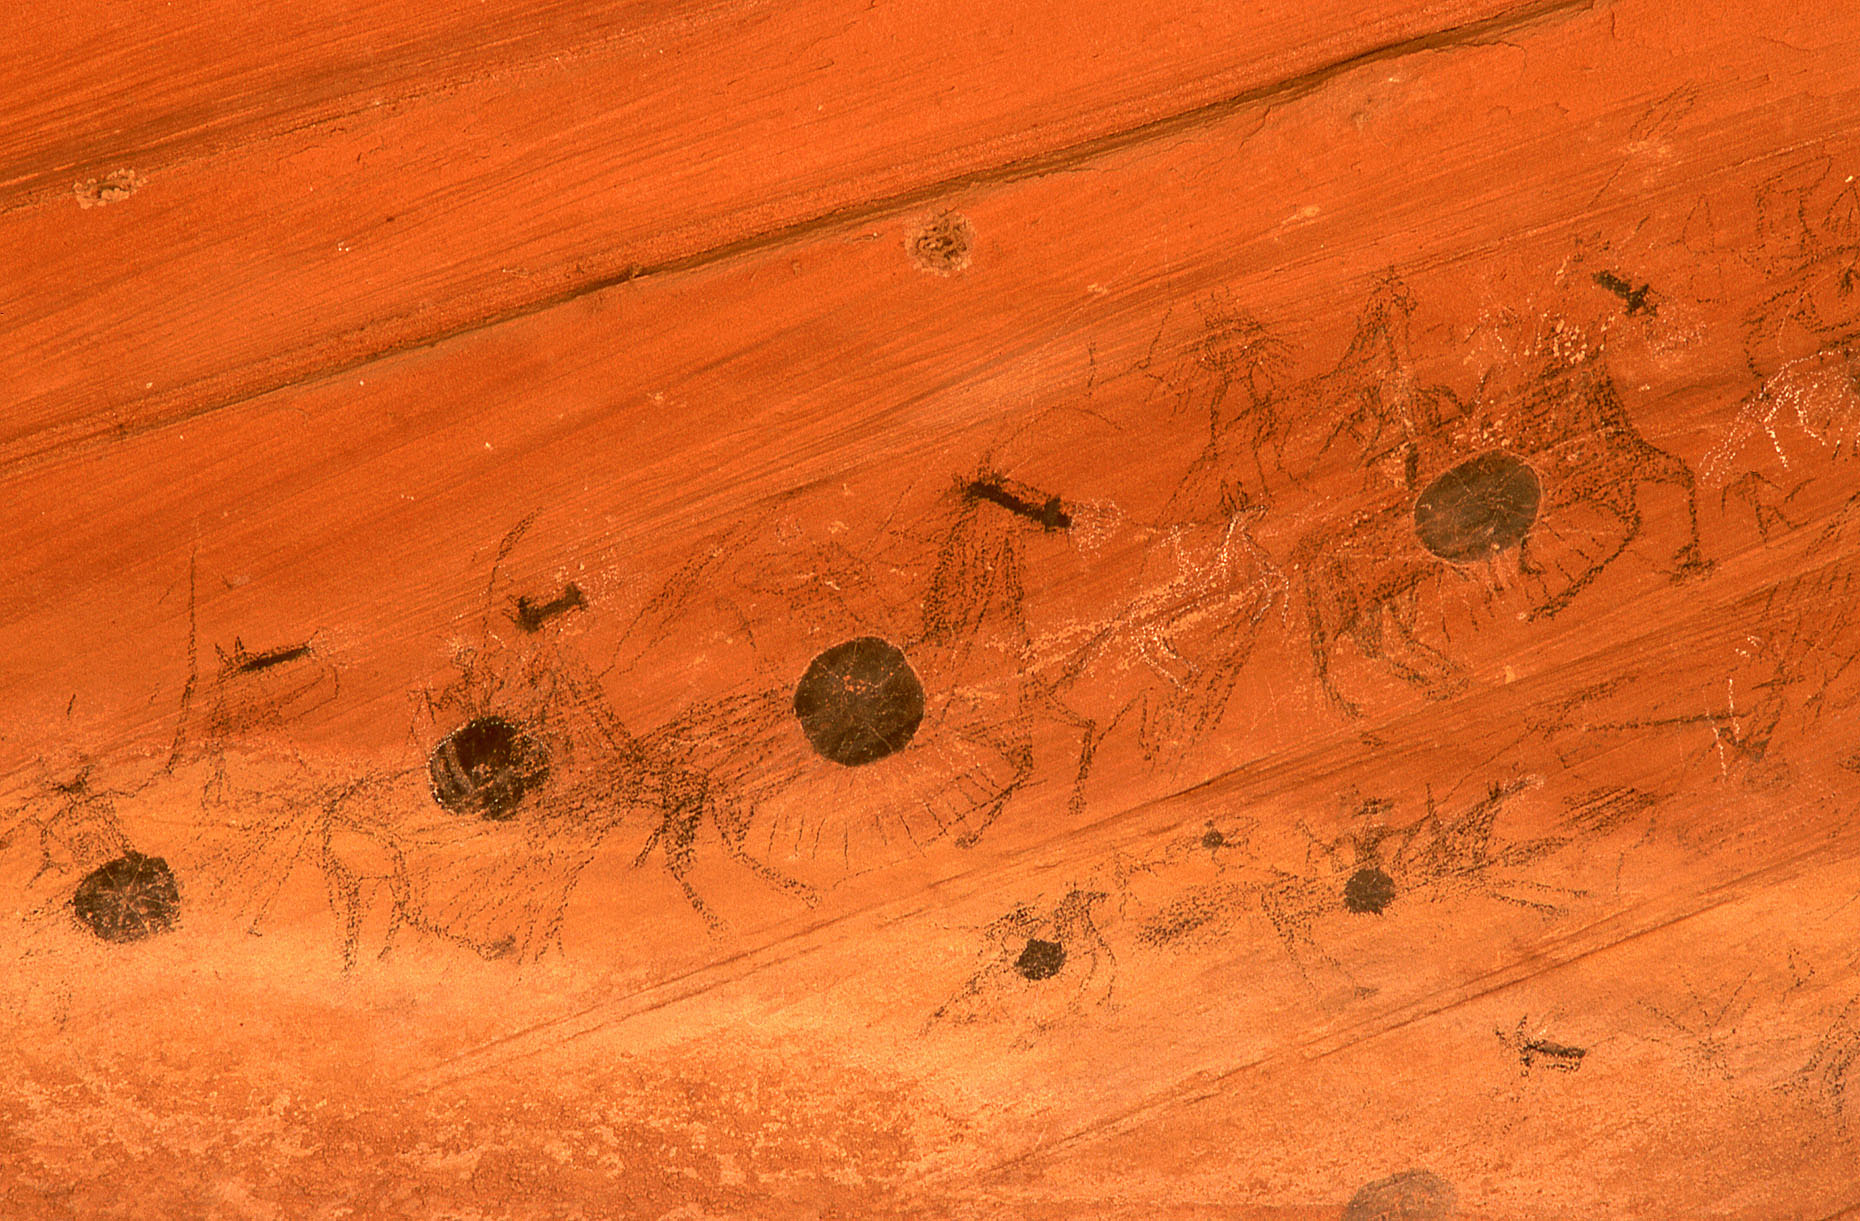 Ute Fight Mural, John Annerino, Canyon del Muerto, Canyon de Chelly National Monument, AZ